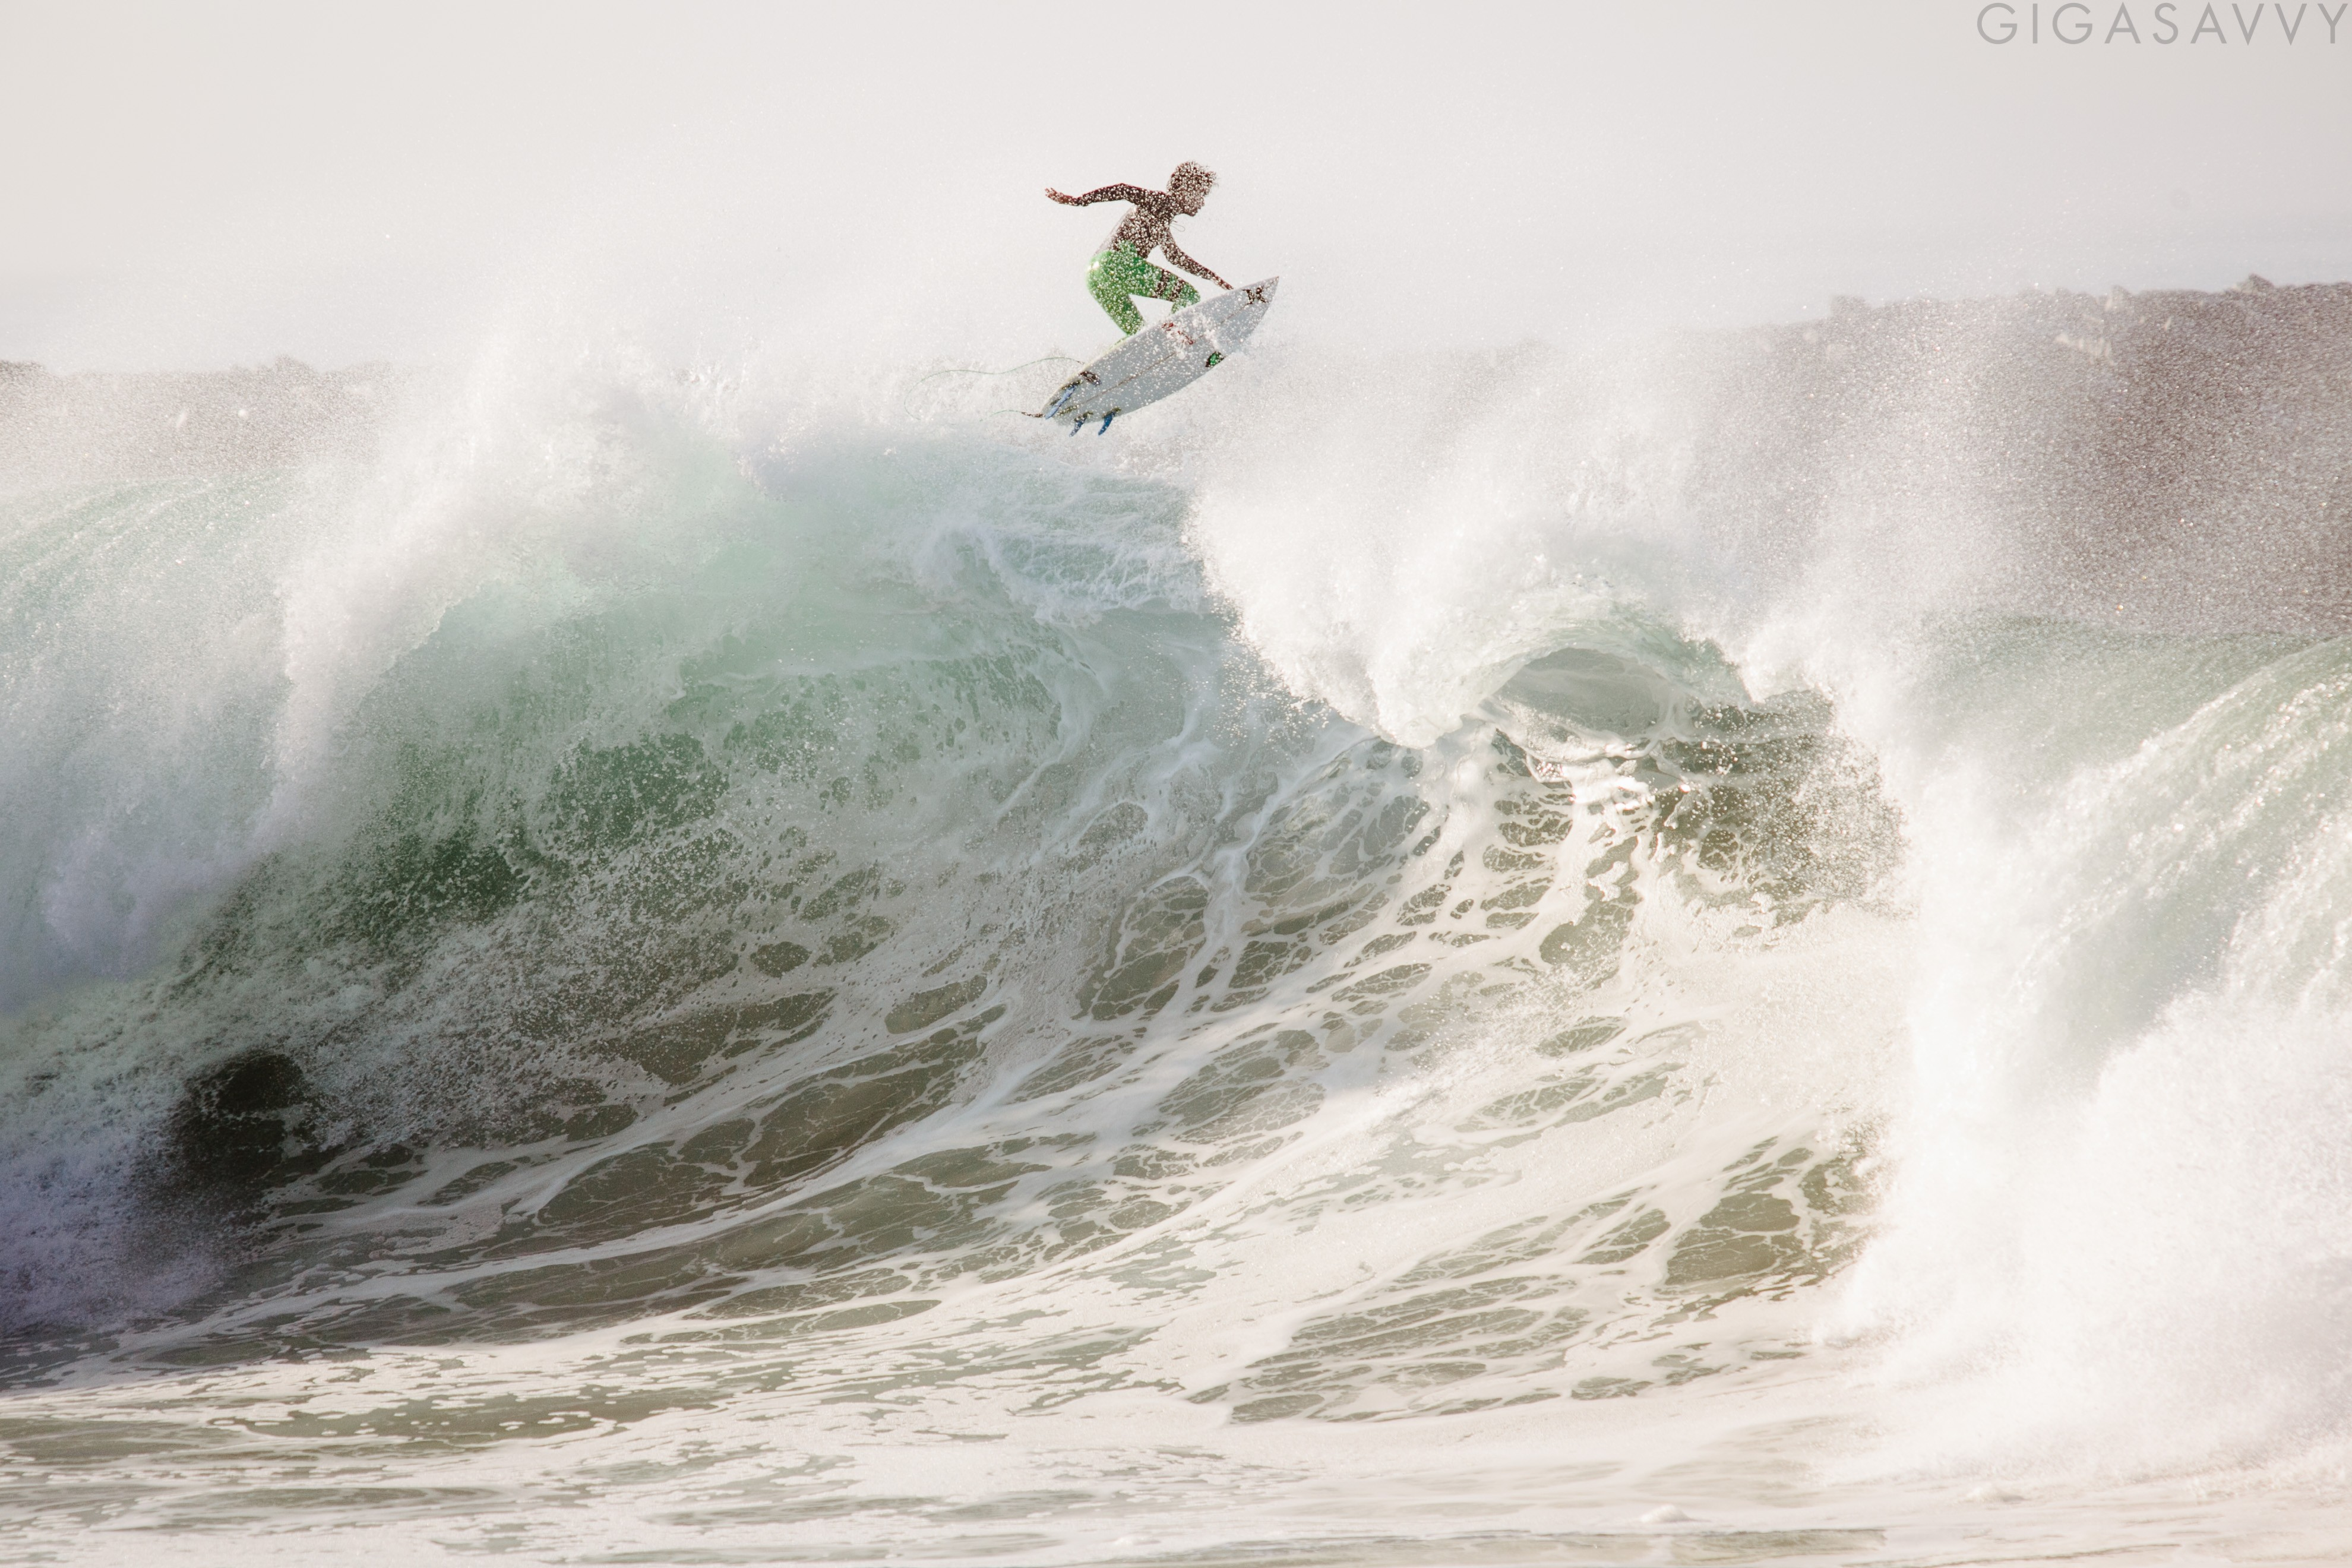 Gigasavvy The Wedge August 2014 Surfer